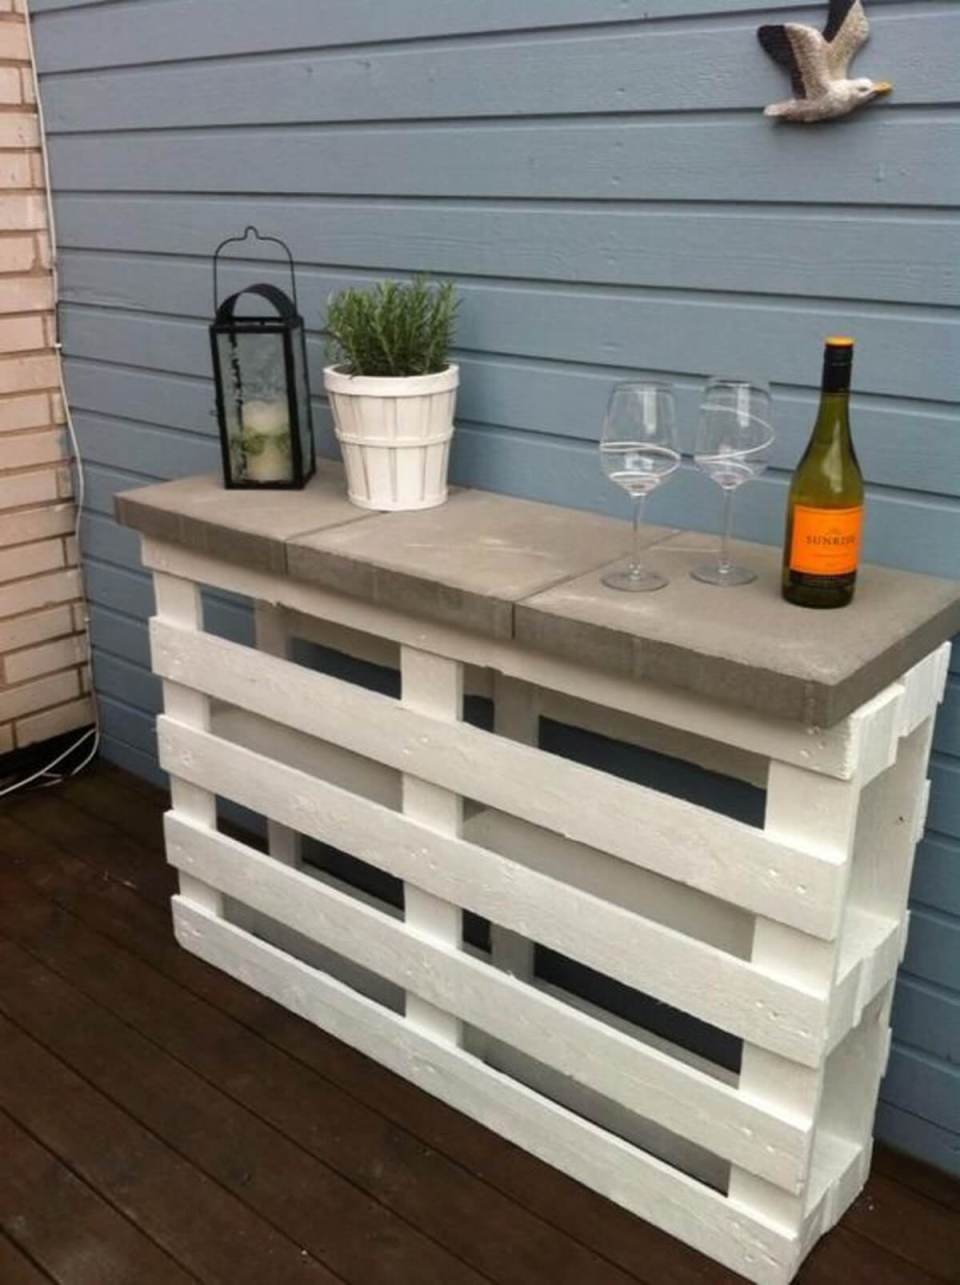 Upcycled Painted Pallet and Concrete Table